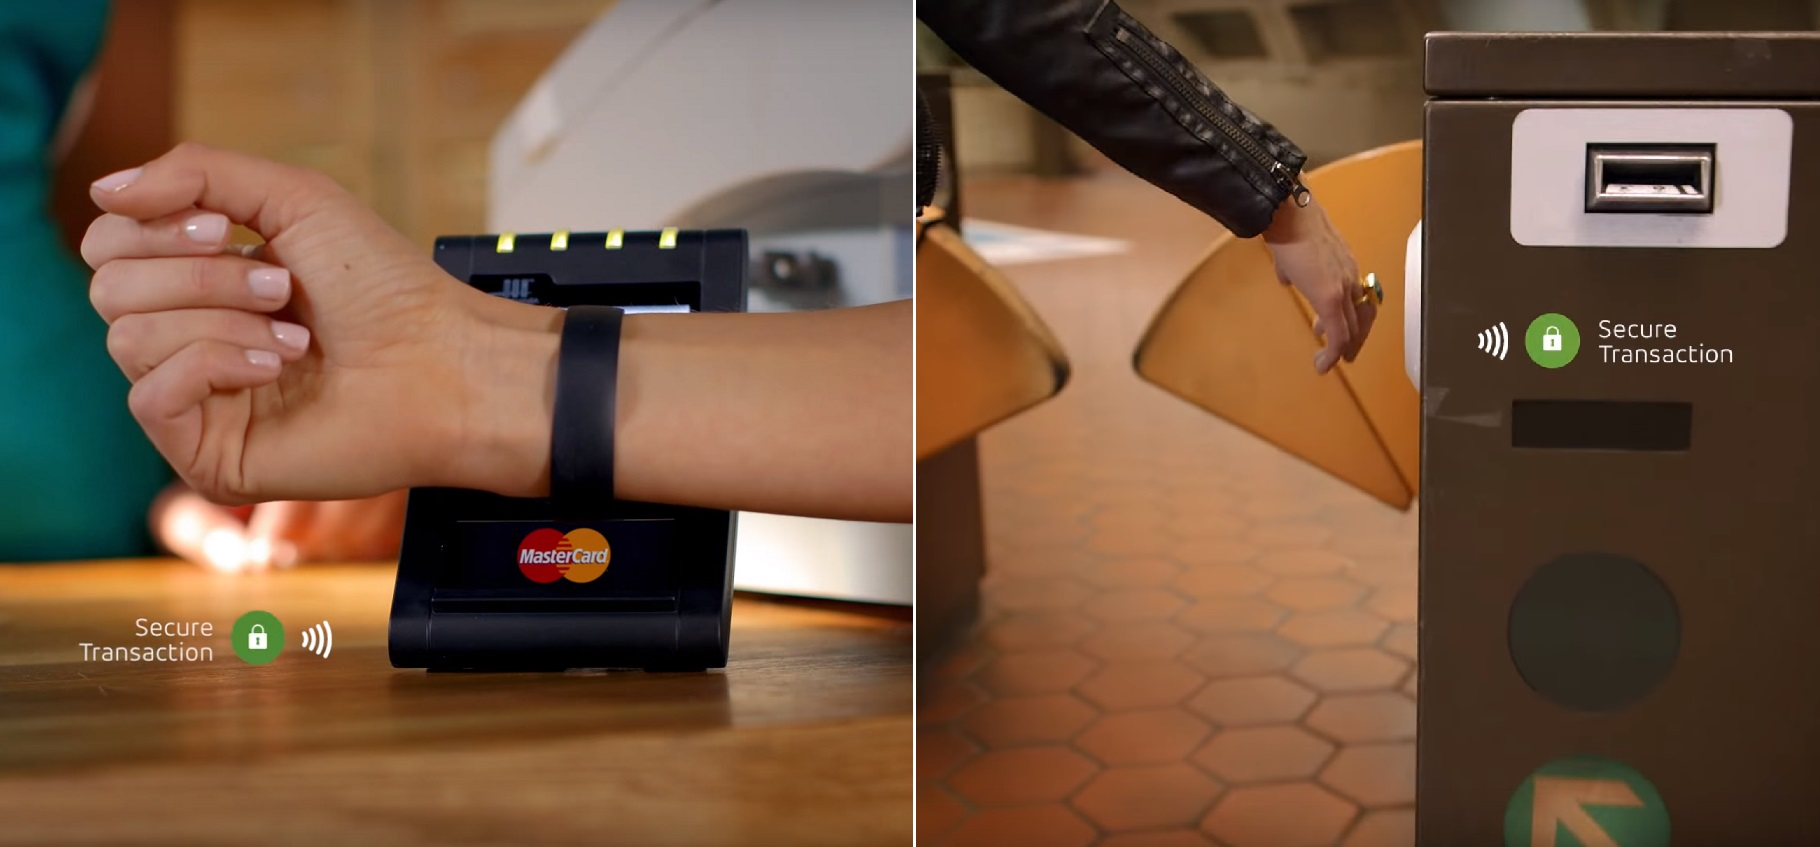 MasterCard mobile payment